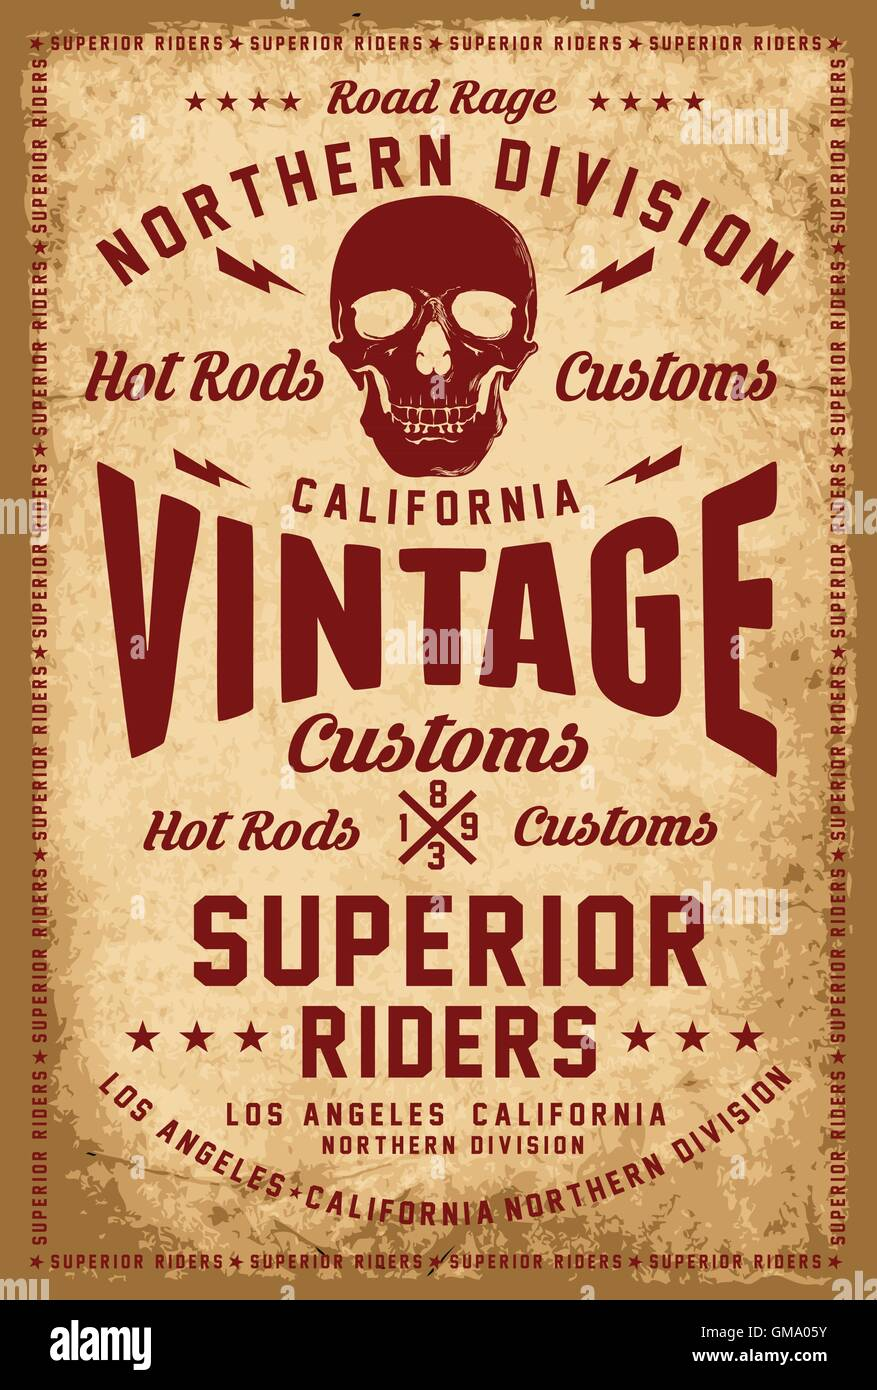 Vintage Posters Stock Photos  Vintage Posters Stock Images Alamy - Los angeles posters vintage